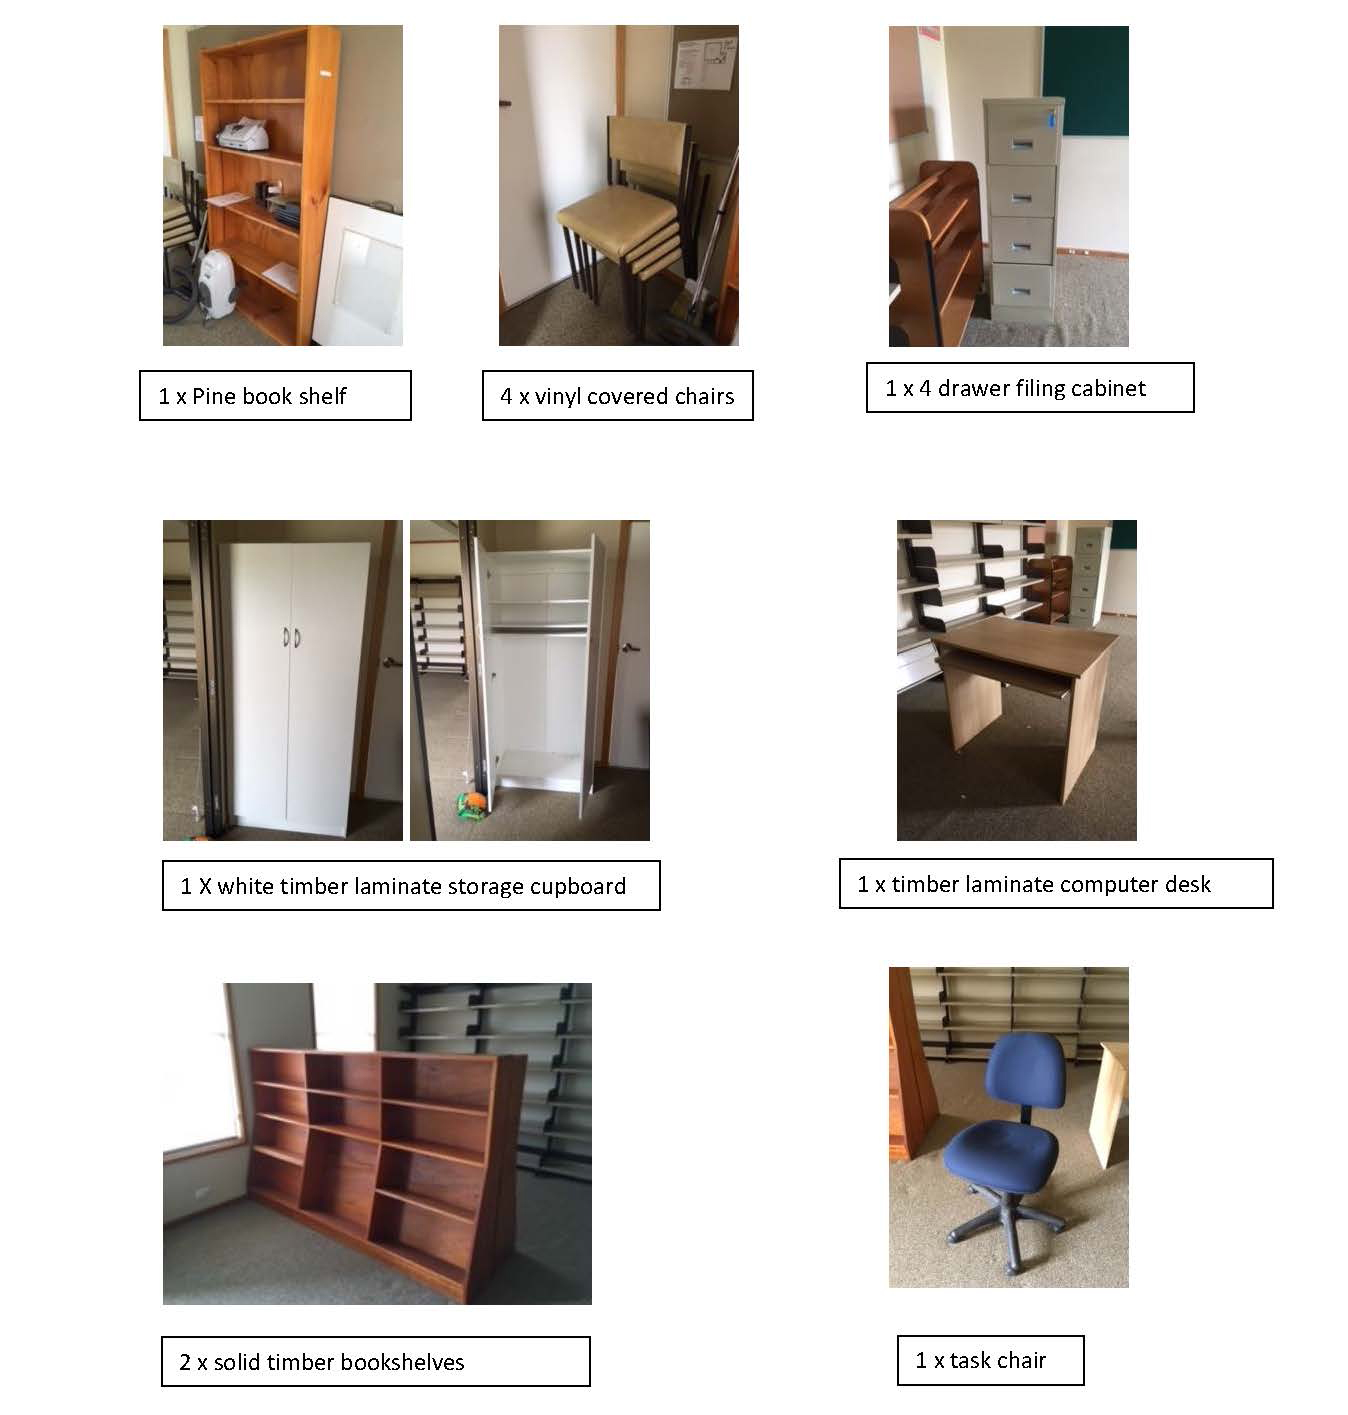 Surplus furniture and fittings photos_Page_1.jpg